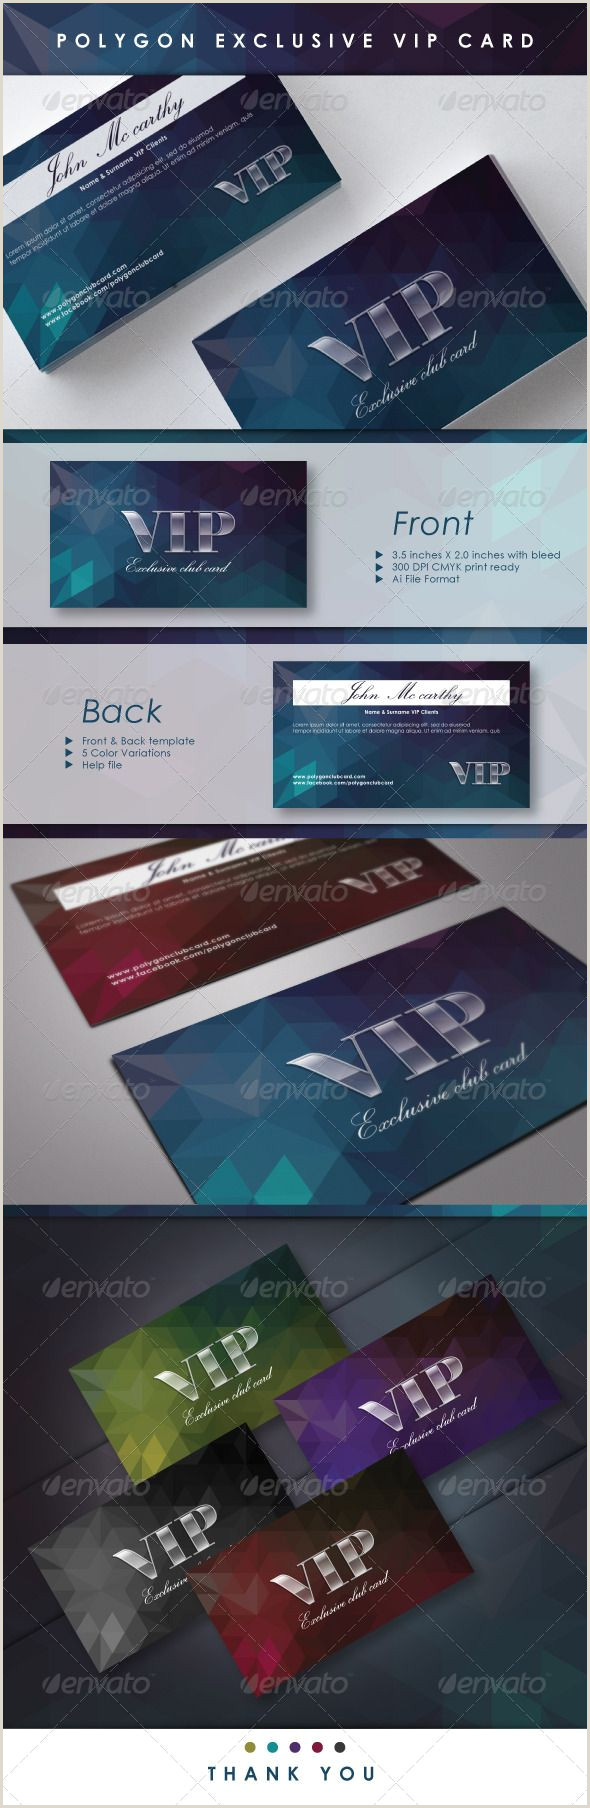 Print Unique Discount Codes On Business Cards Polygon Exclusive Vip Card Graphicriver